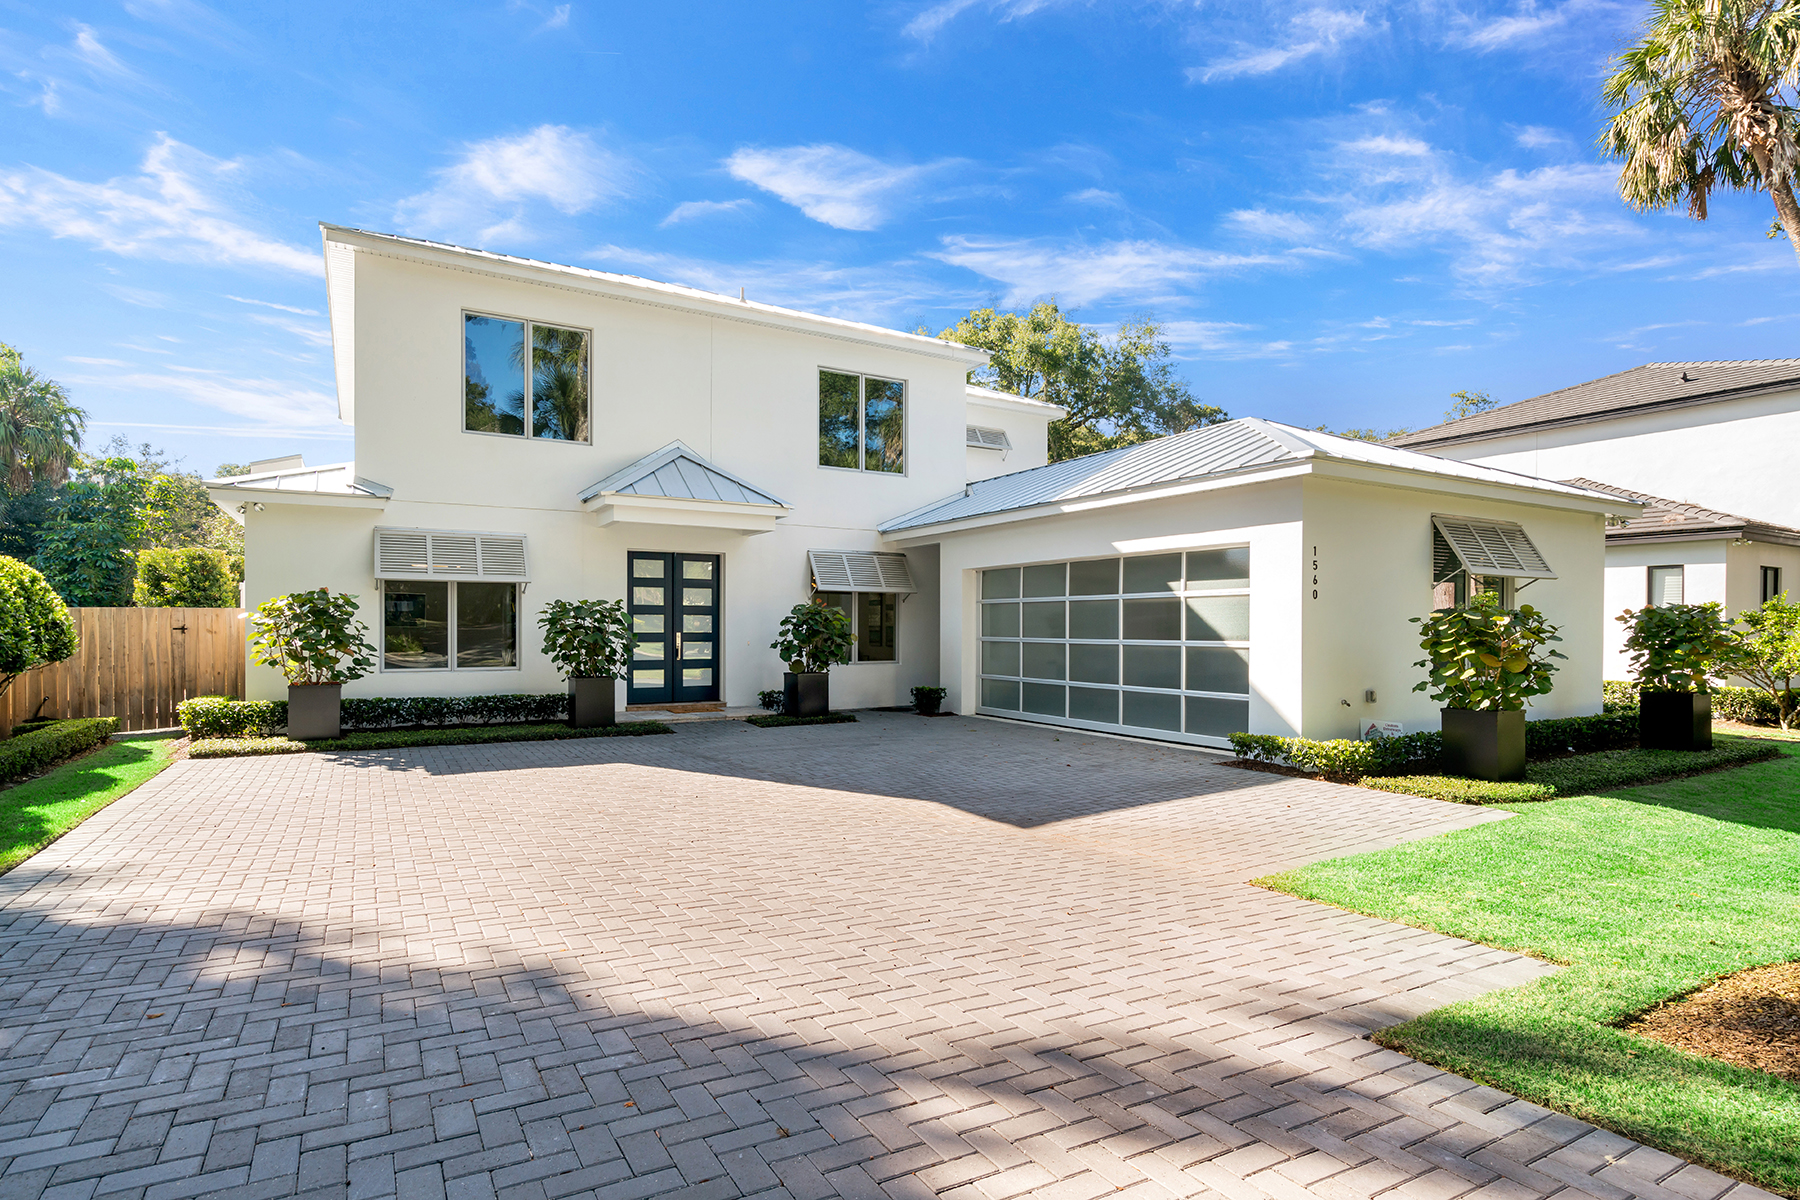 Single Family Homes for Sale at WINTER PARK 1560 Bryan Ave Winter Park, Florida 32789 United States